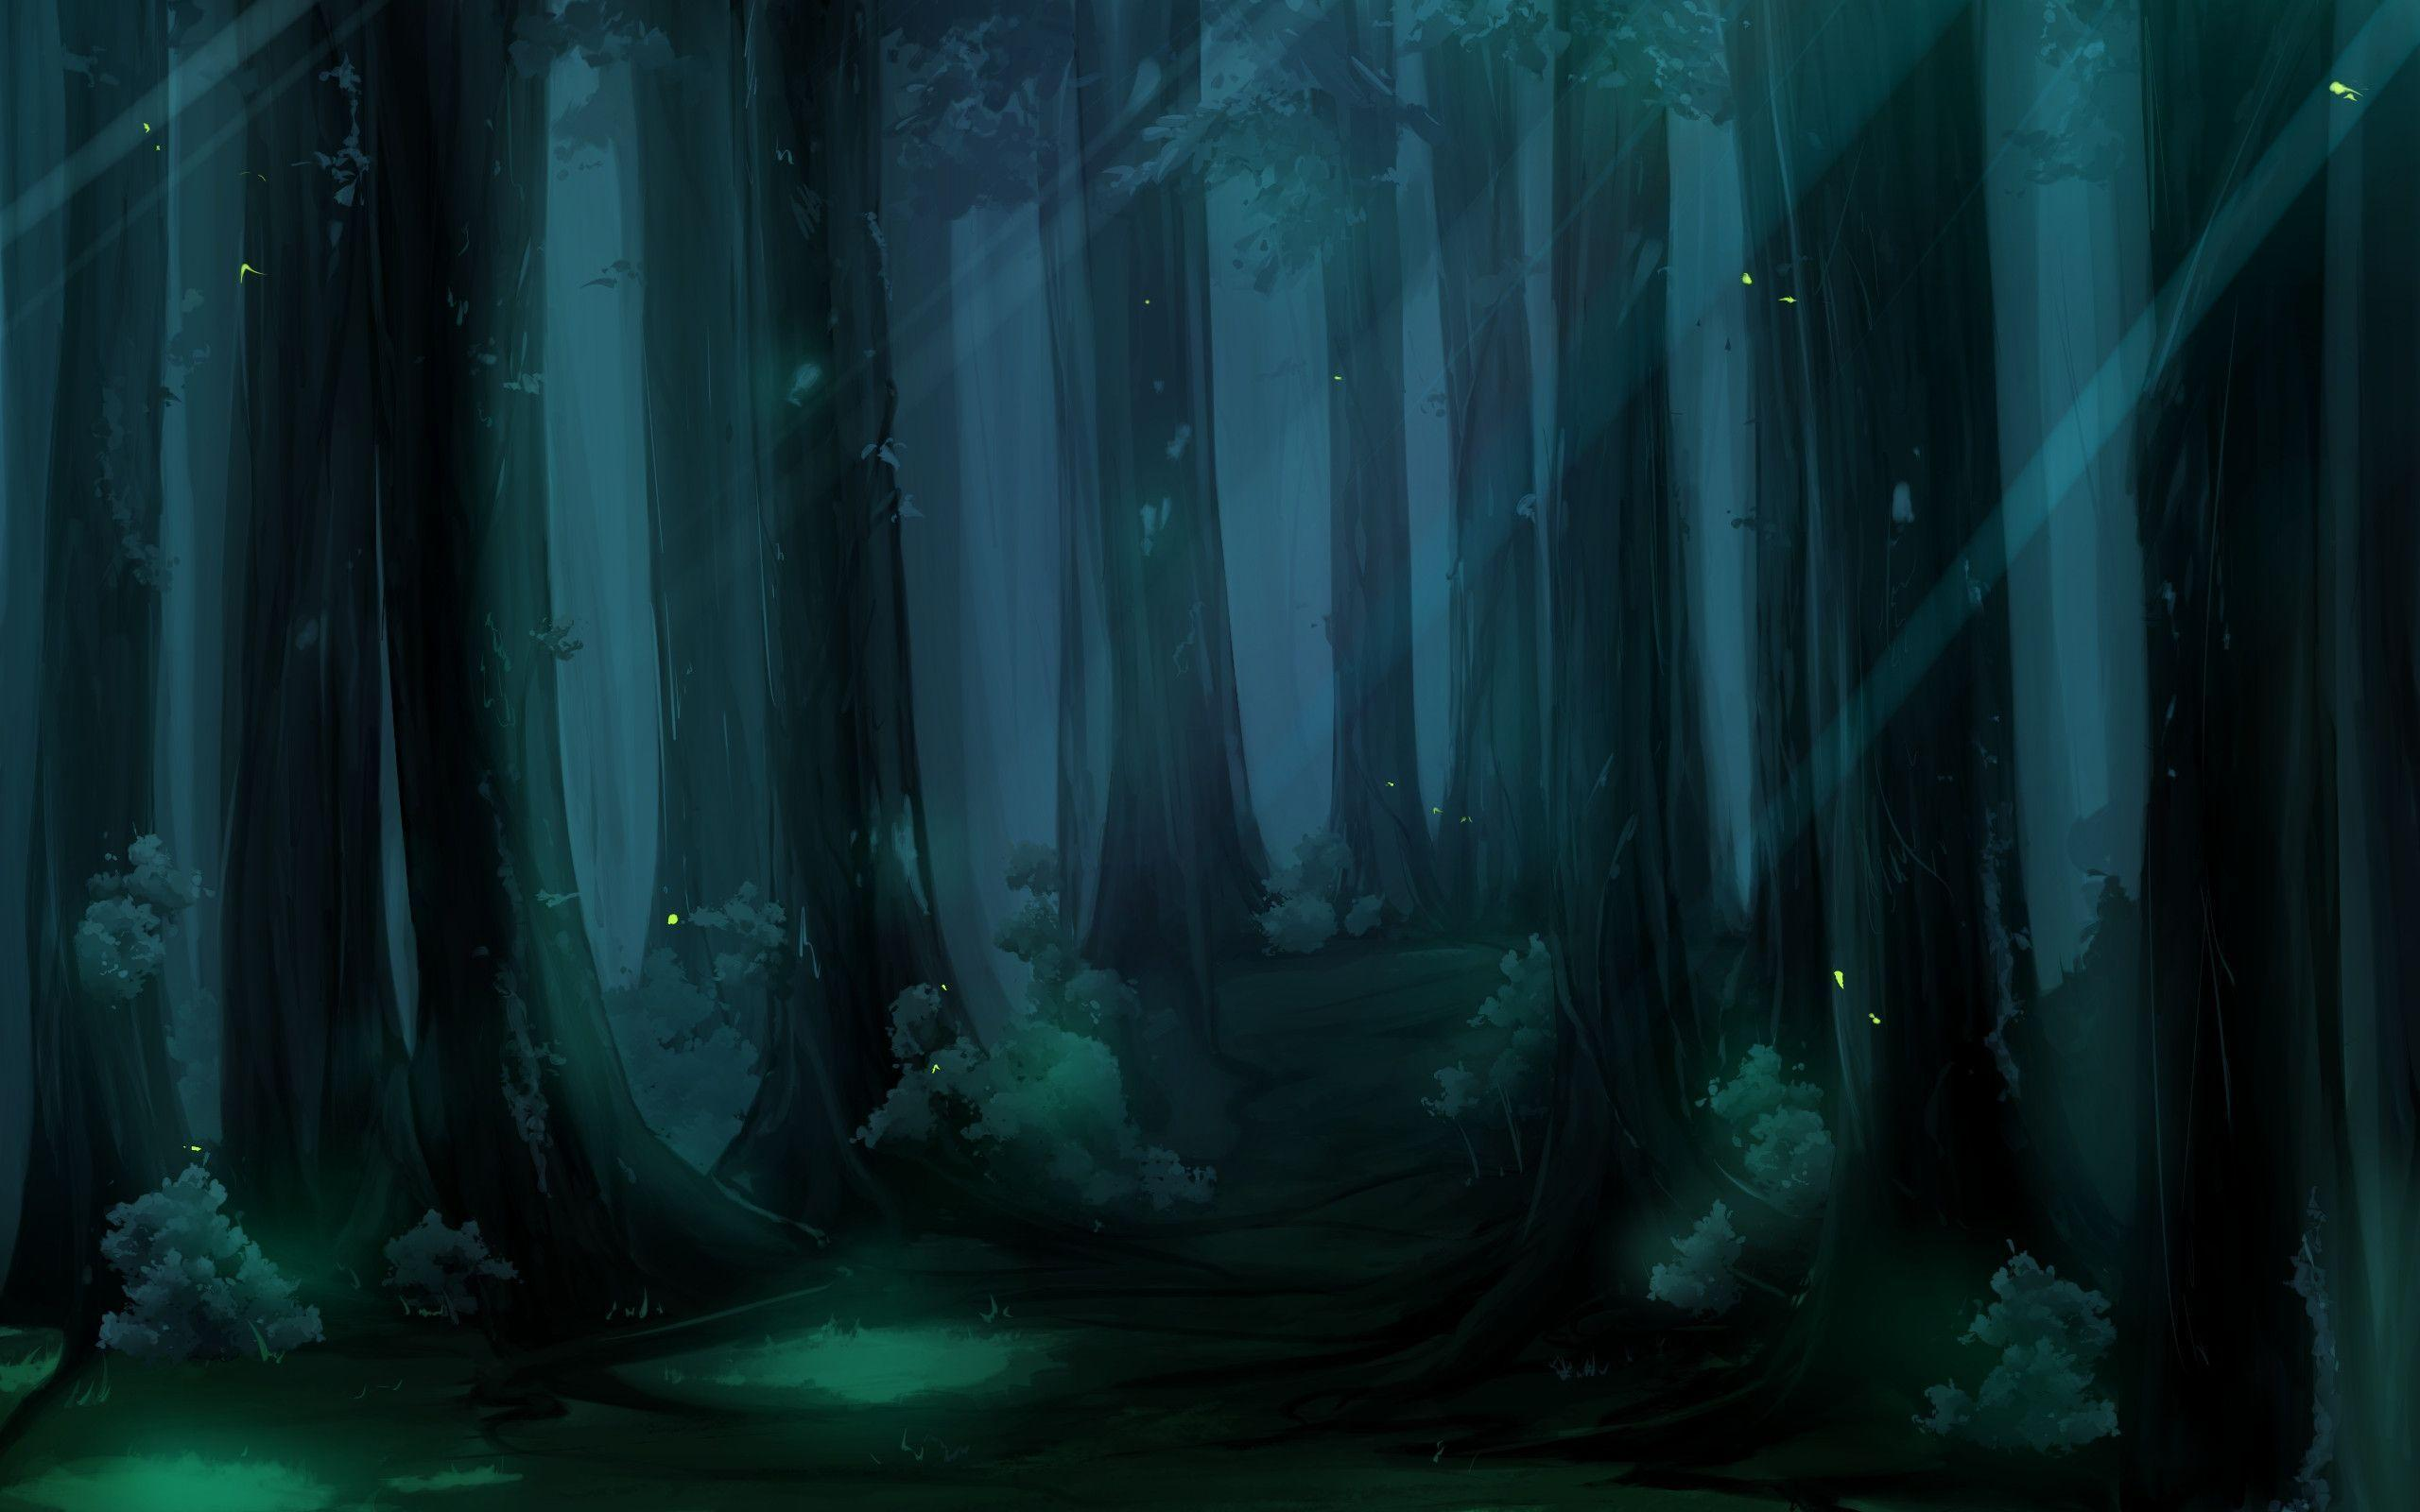 Anime Forest Backgrounds 2560x1600